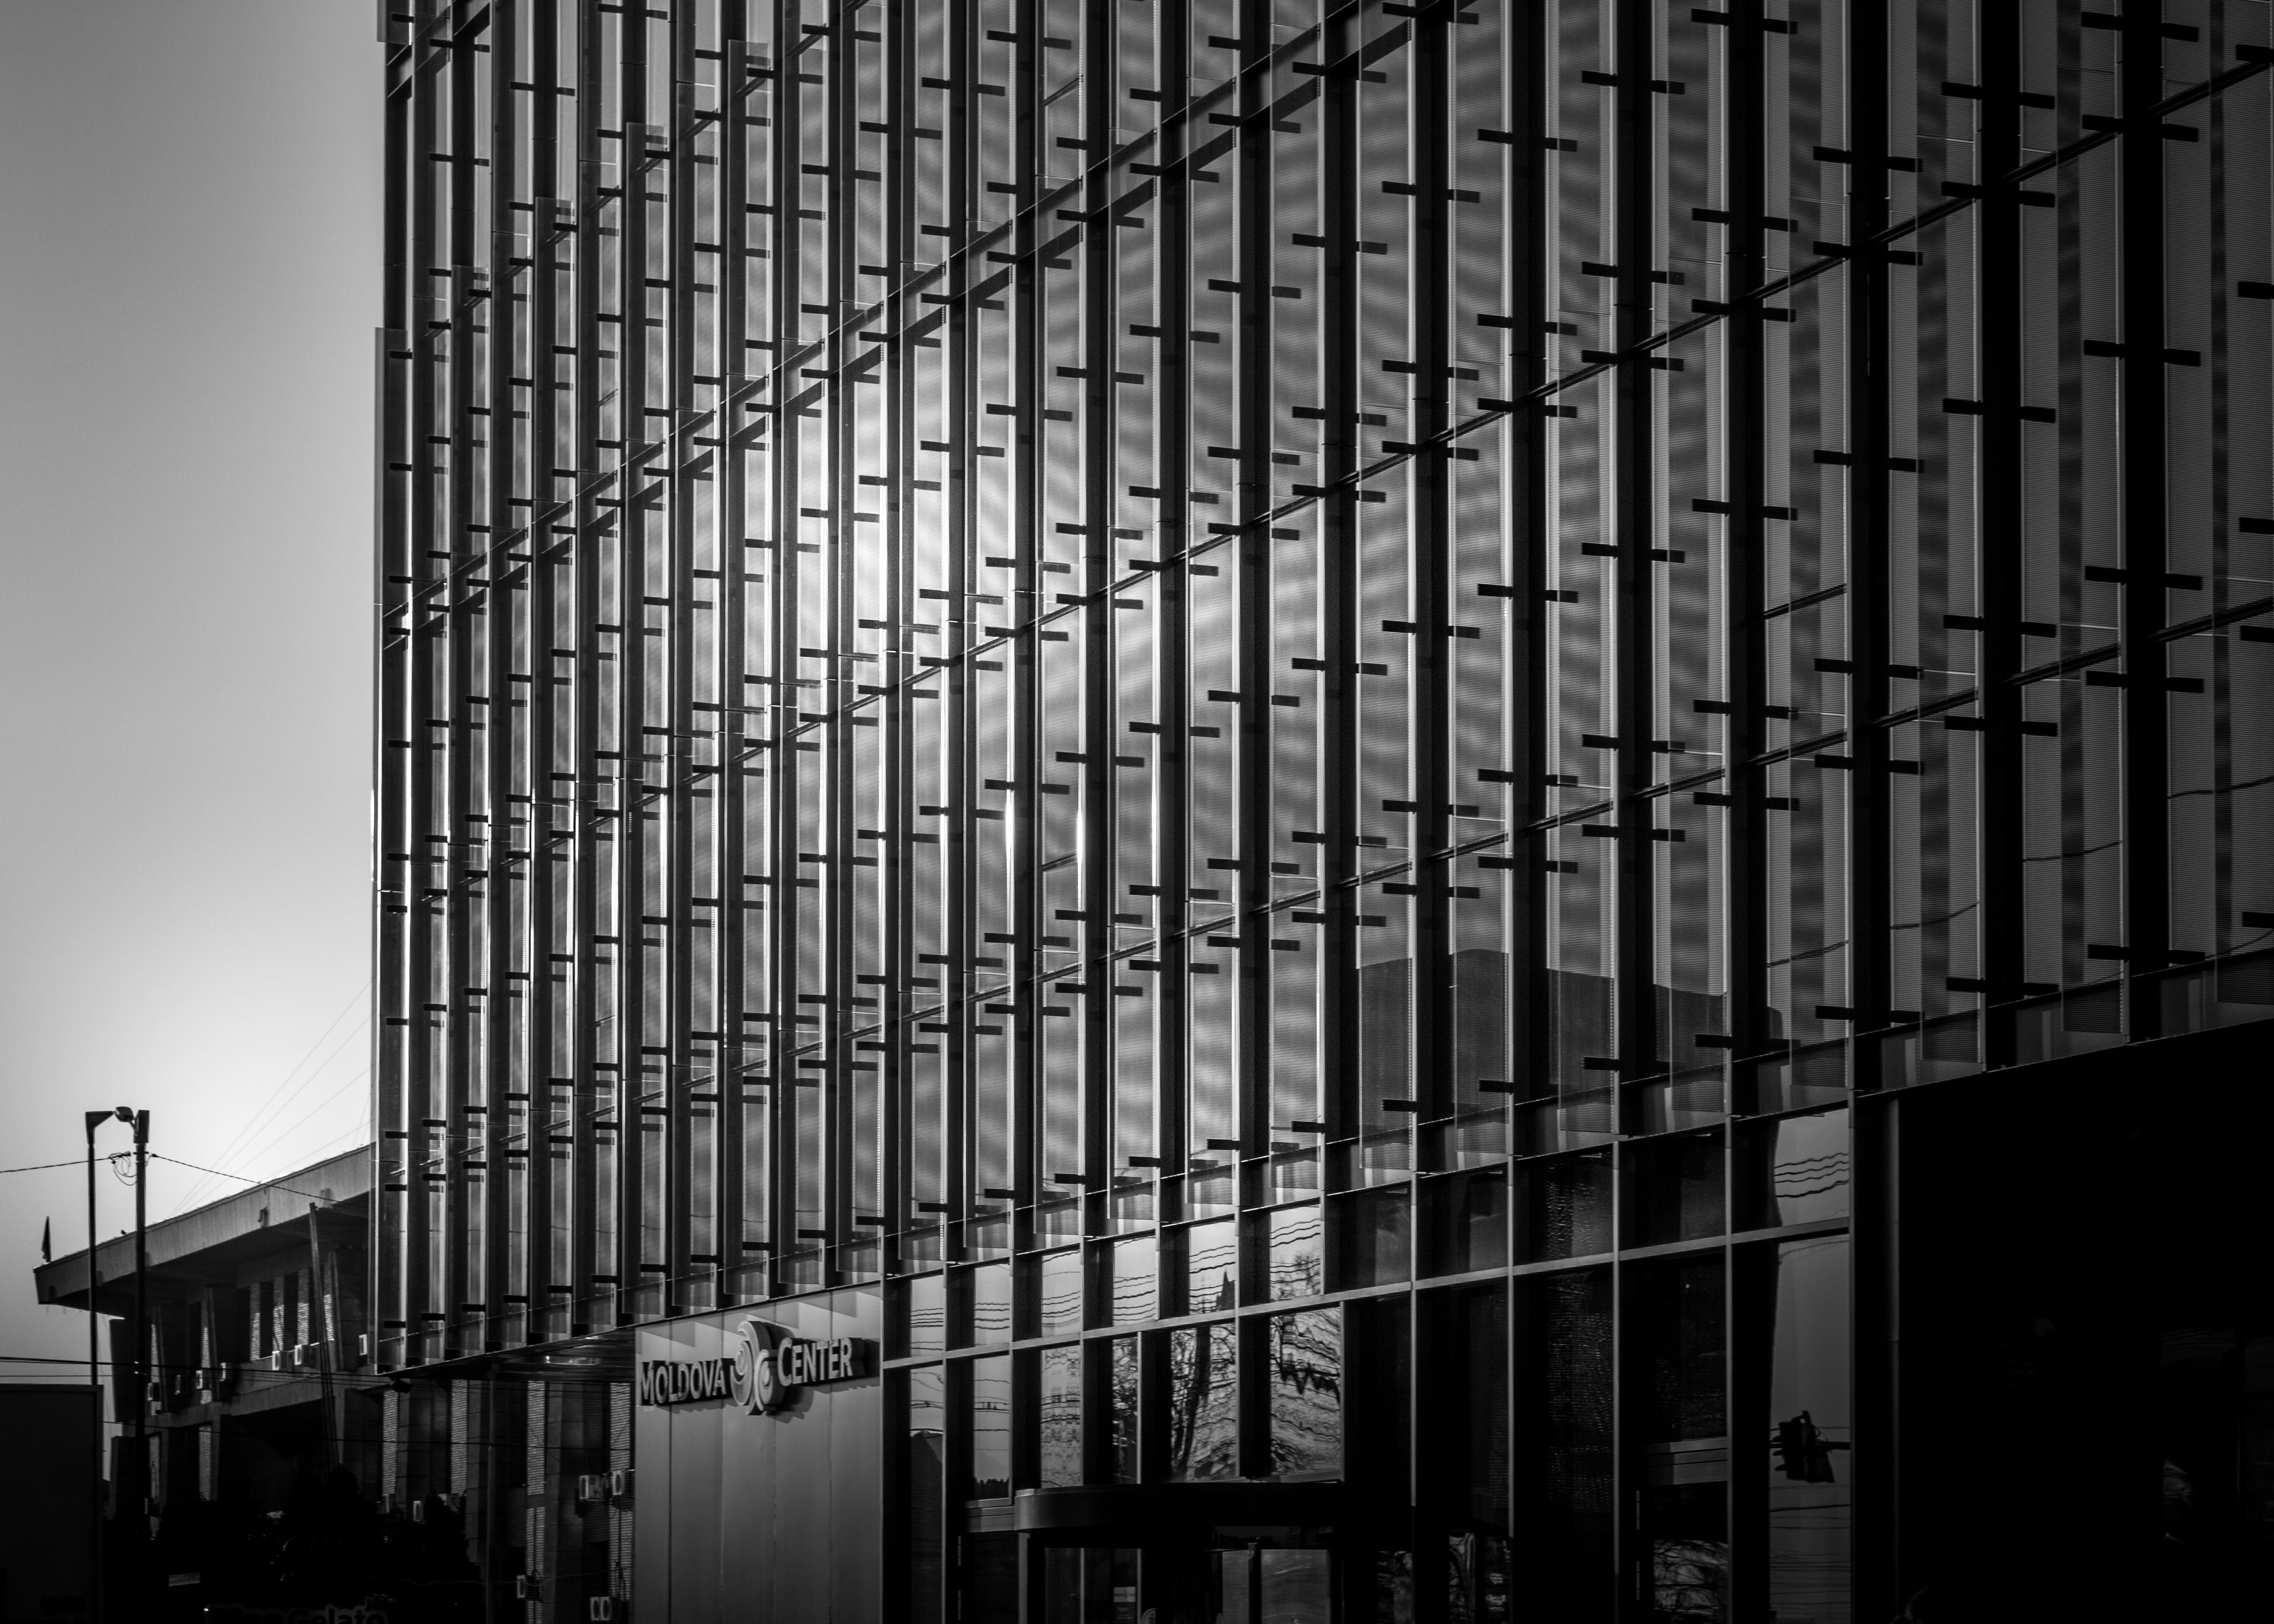 Free stock photo of building, glass, architecture, reflection